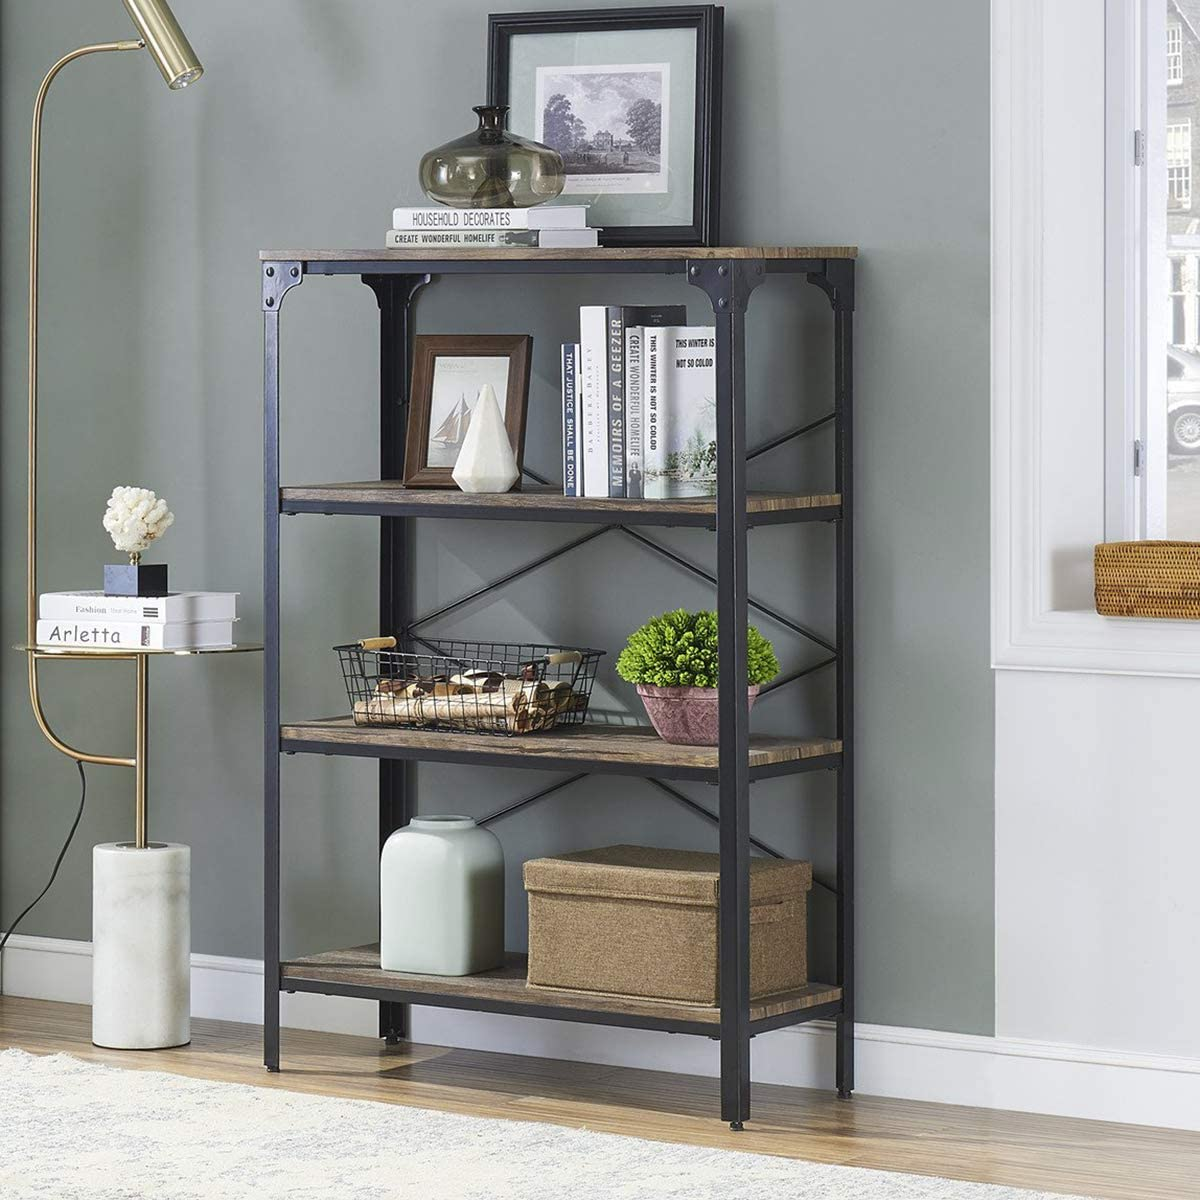 O K FURNITURE 4-Shelf Industrial Open Bookcase, Wood and Metal Vintage Etagere Bookshelf for Living Room, Gray-Brown